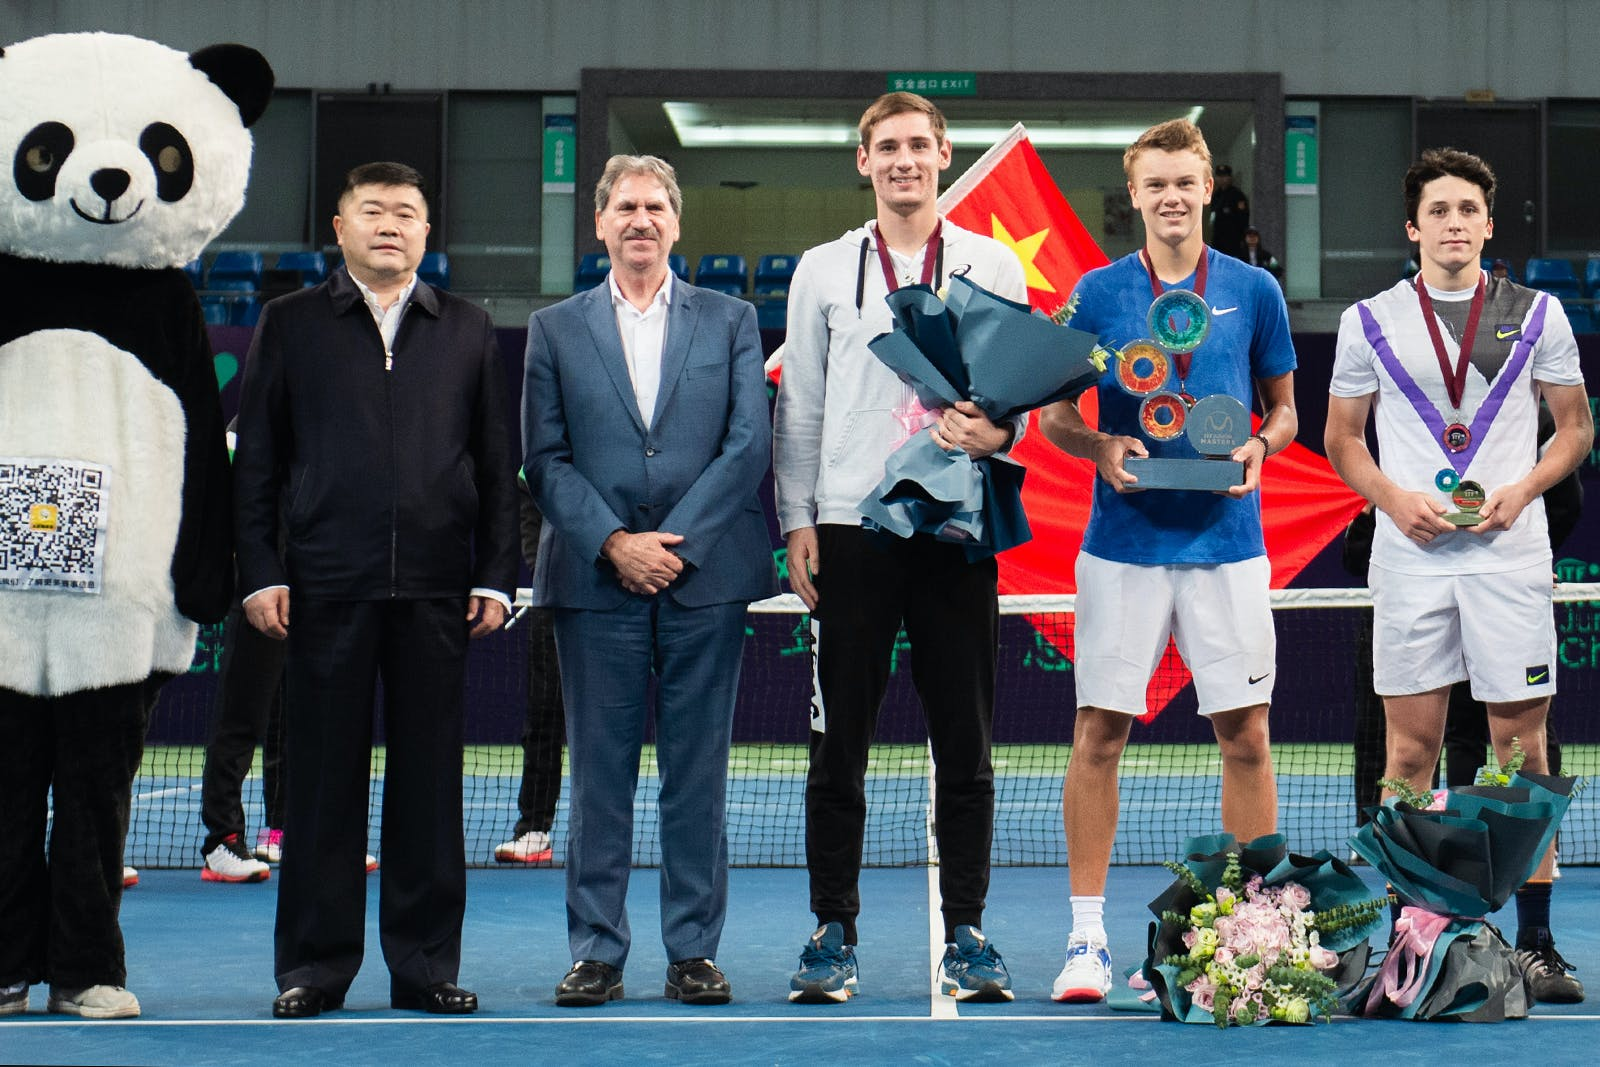 Holger Vitus Nodskov Rune, Harold Mayot and Valentin Royer in Chengdu for the ITF juniors Masters 2019